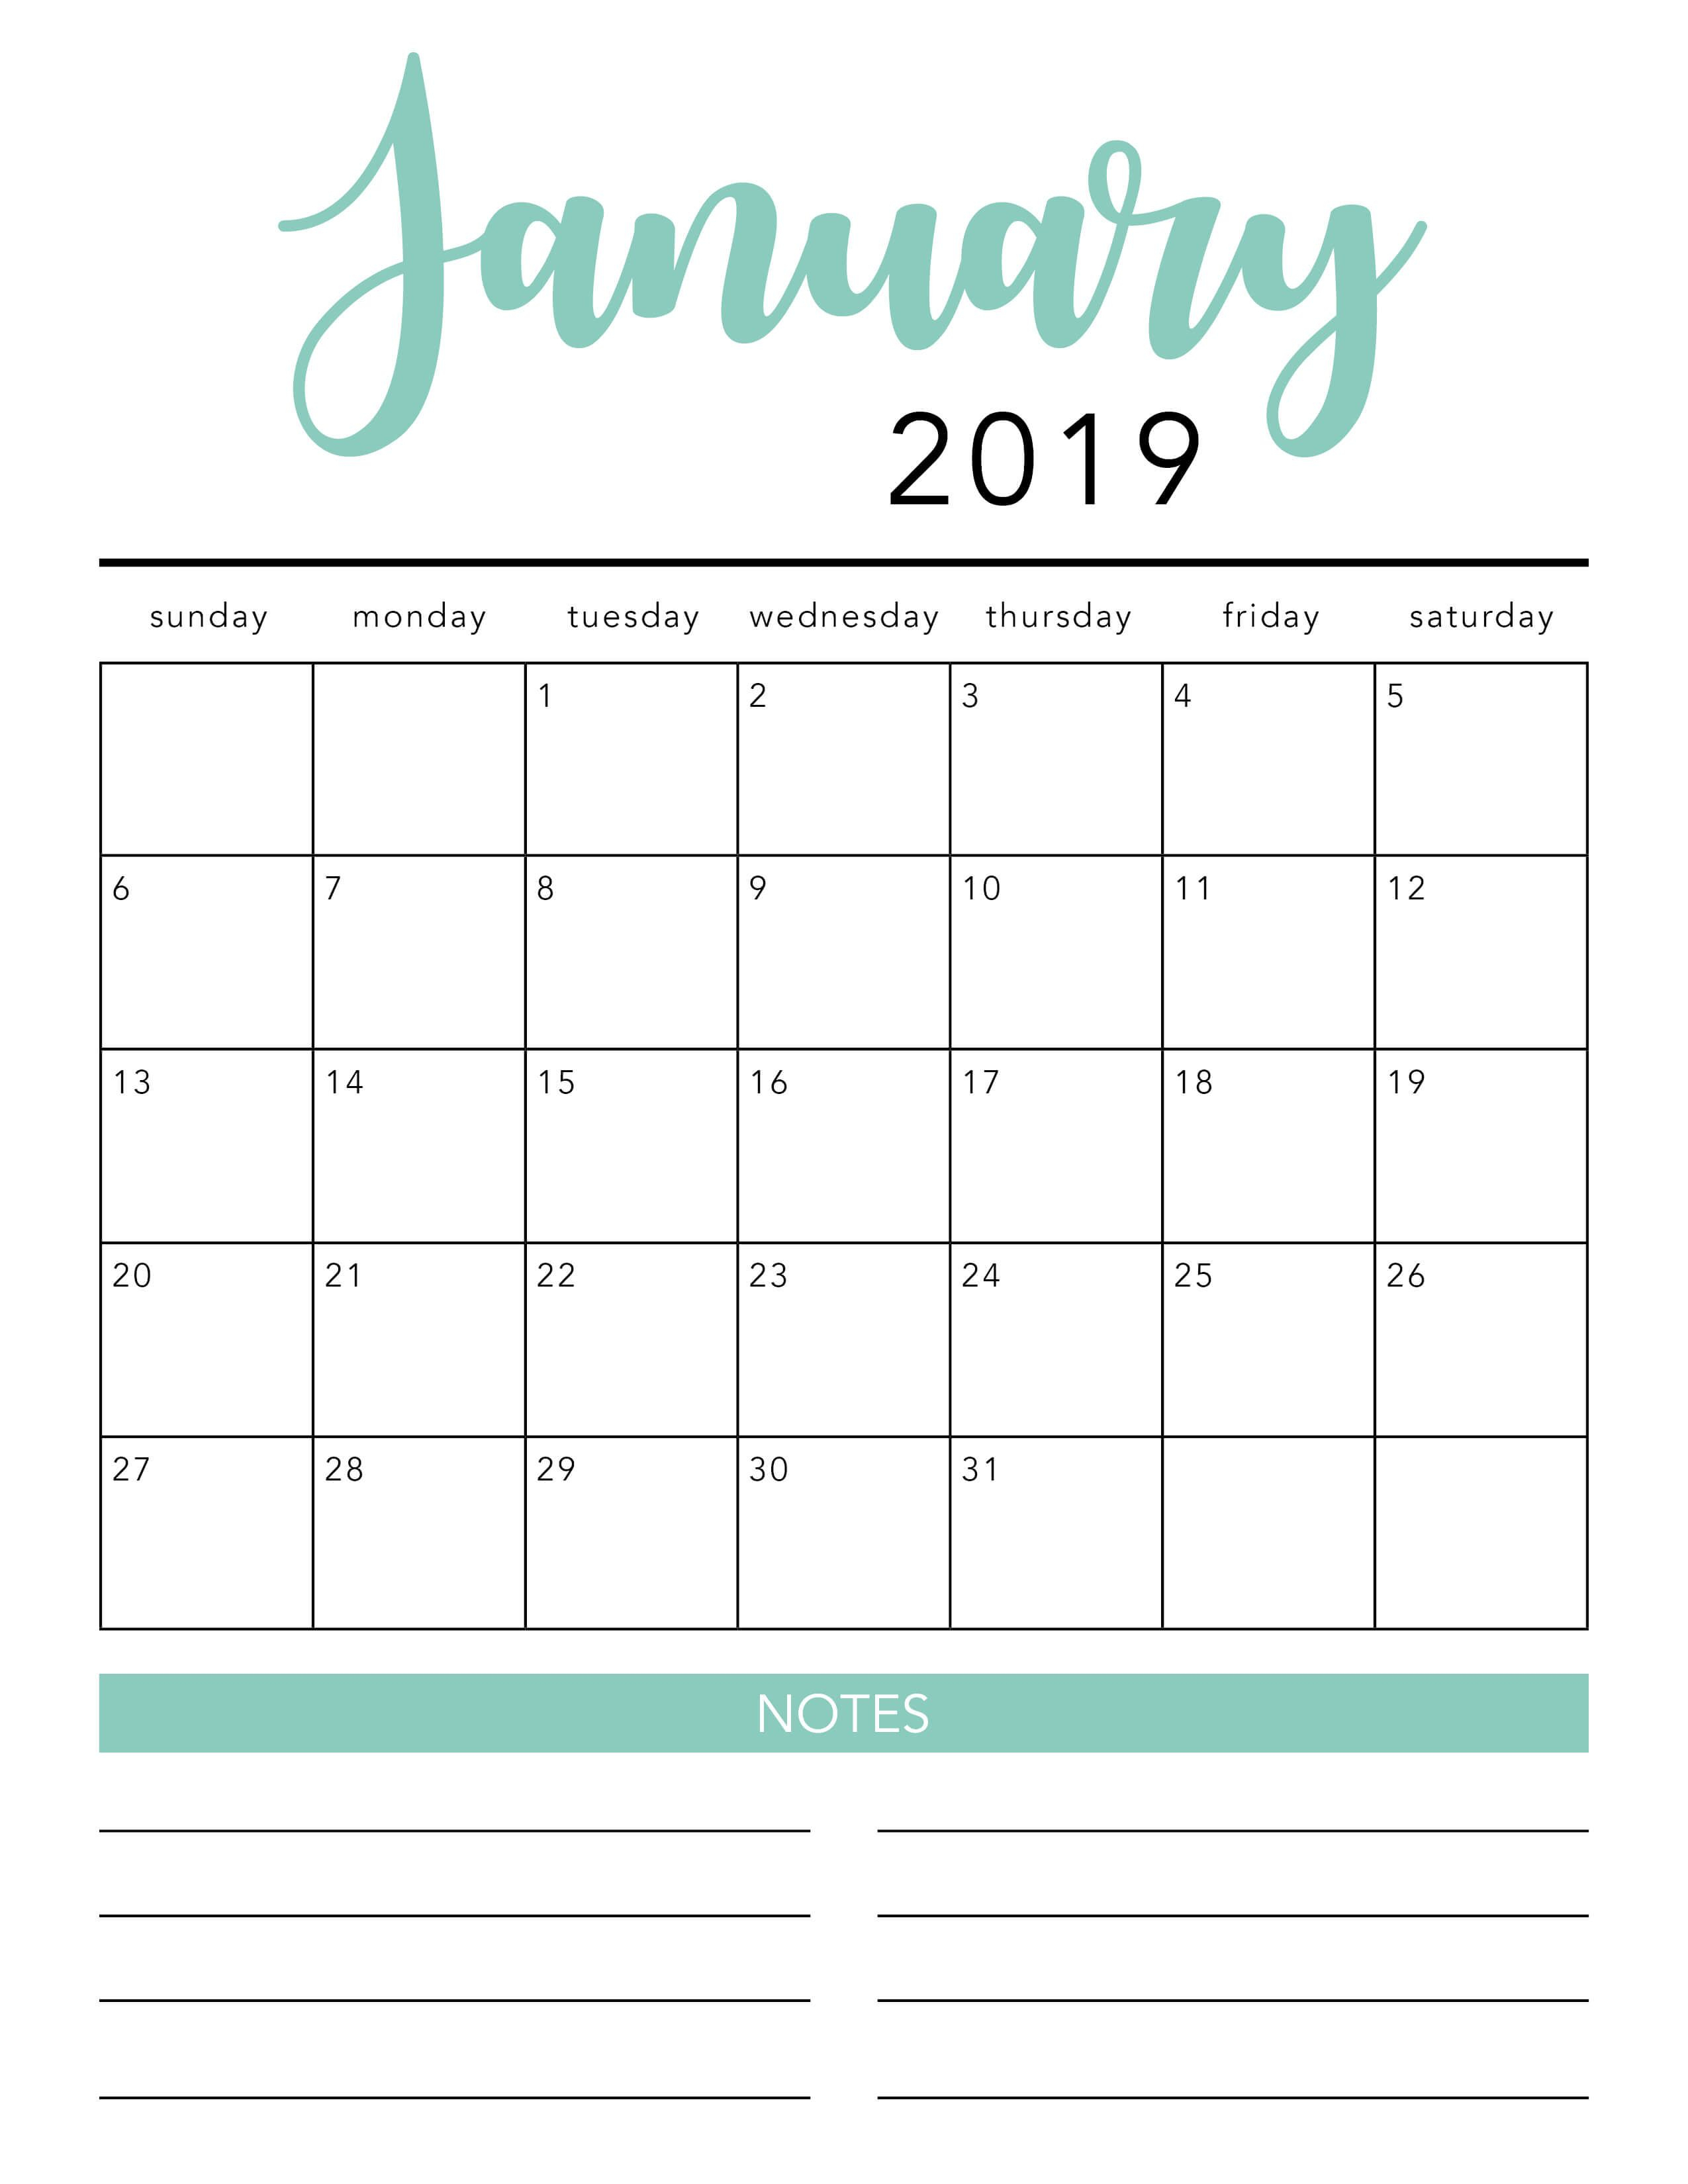 Free 2019 Printable Calendar Template (2 Colors!) - I Heart Naptime inside I Heart Naptime Calendar 2020